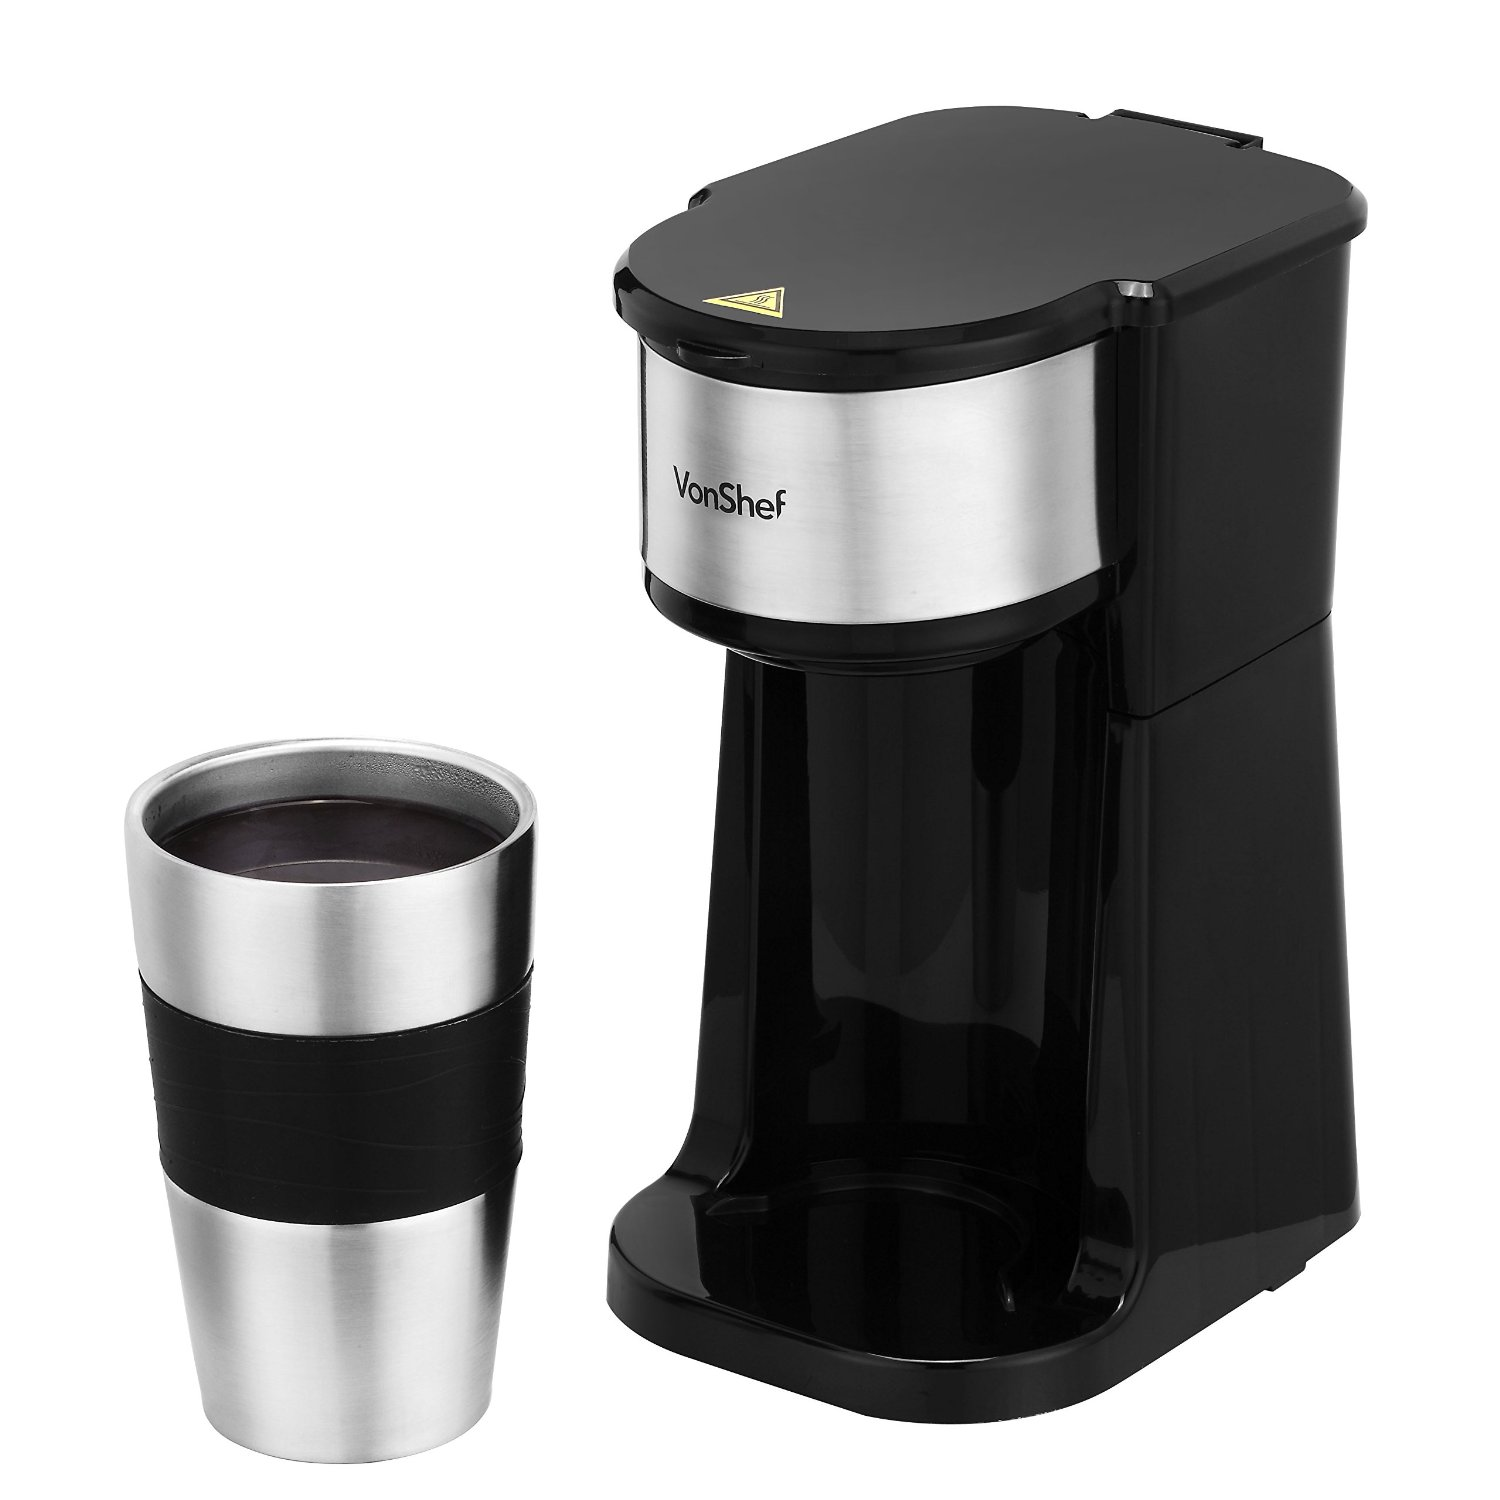 New Vonshef Single Serve Personal Filter Coffee Machine With 14oz